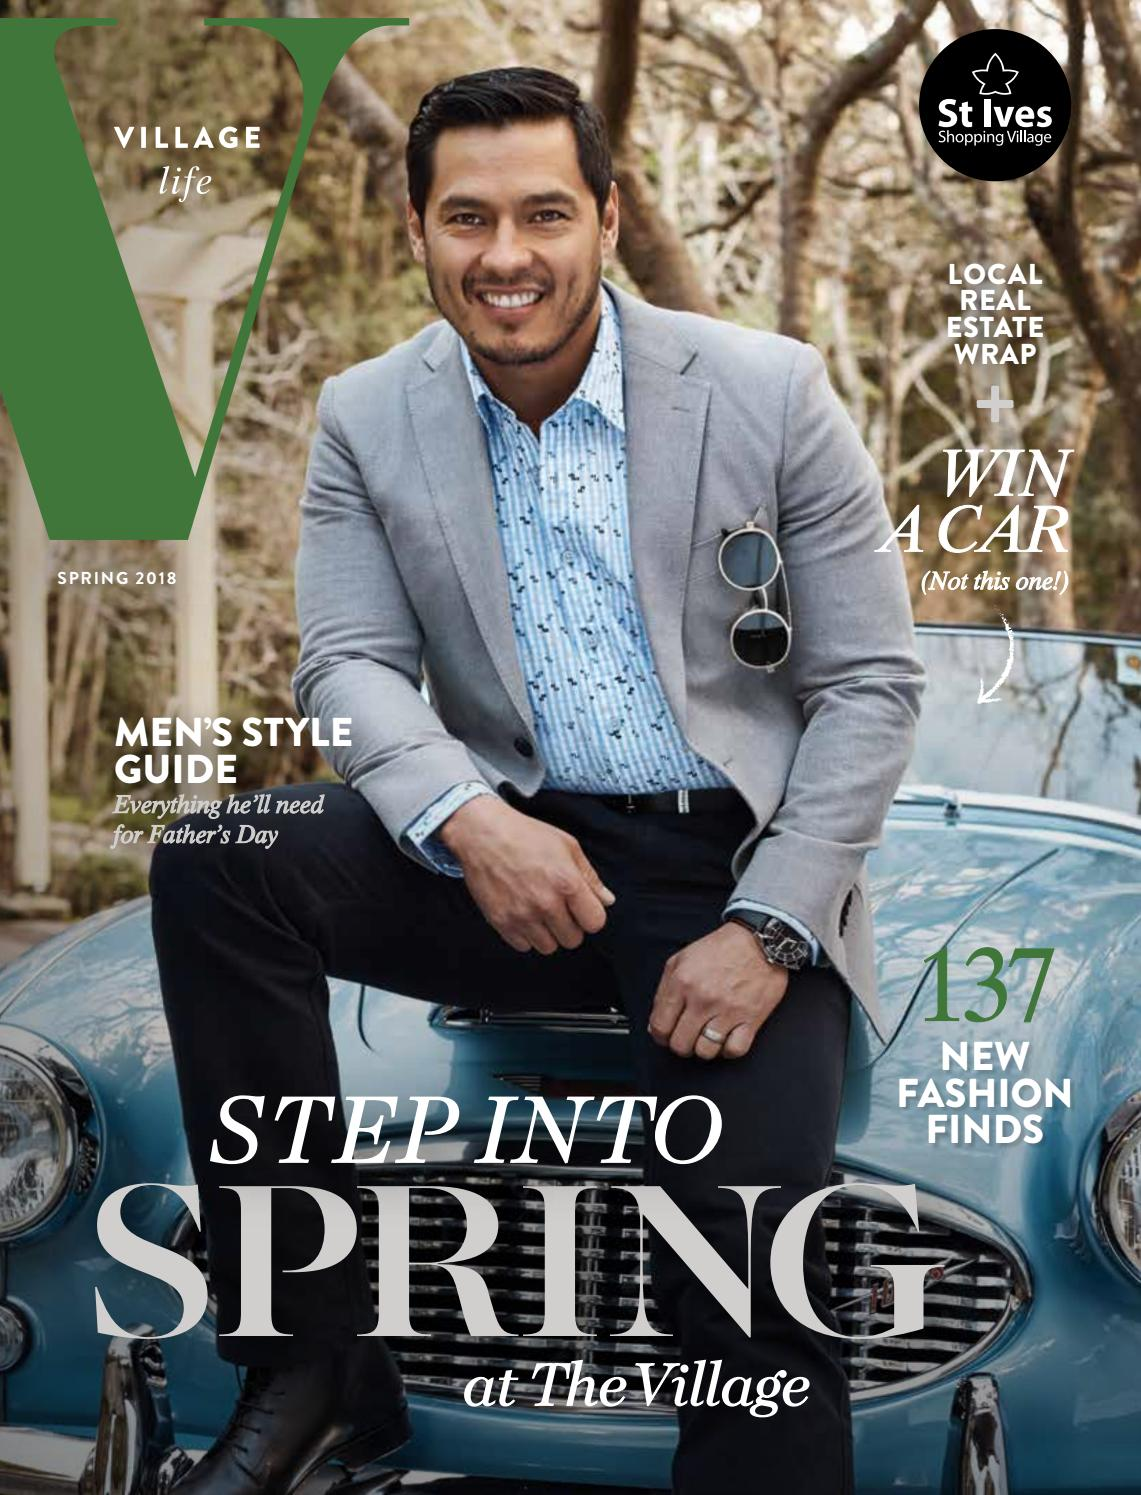 St Ives Village Live Magazine Spring 18 By Life Issuu Dr Kevin Women Boot Casual Shoes 4023 Navy 38